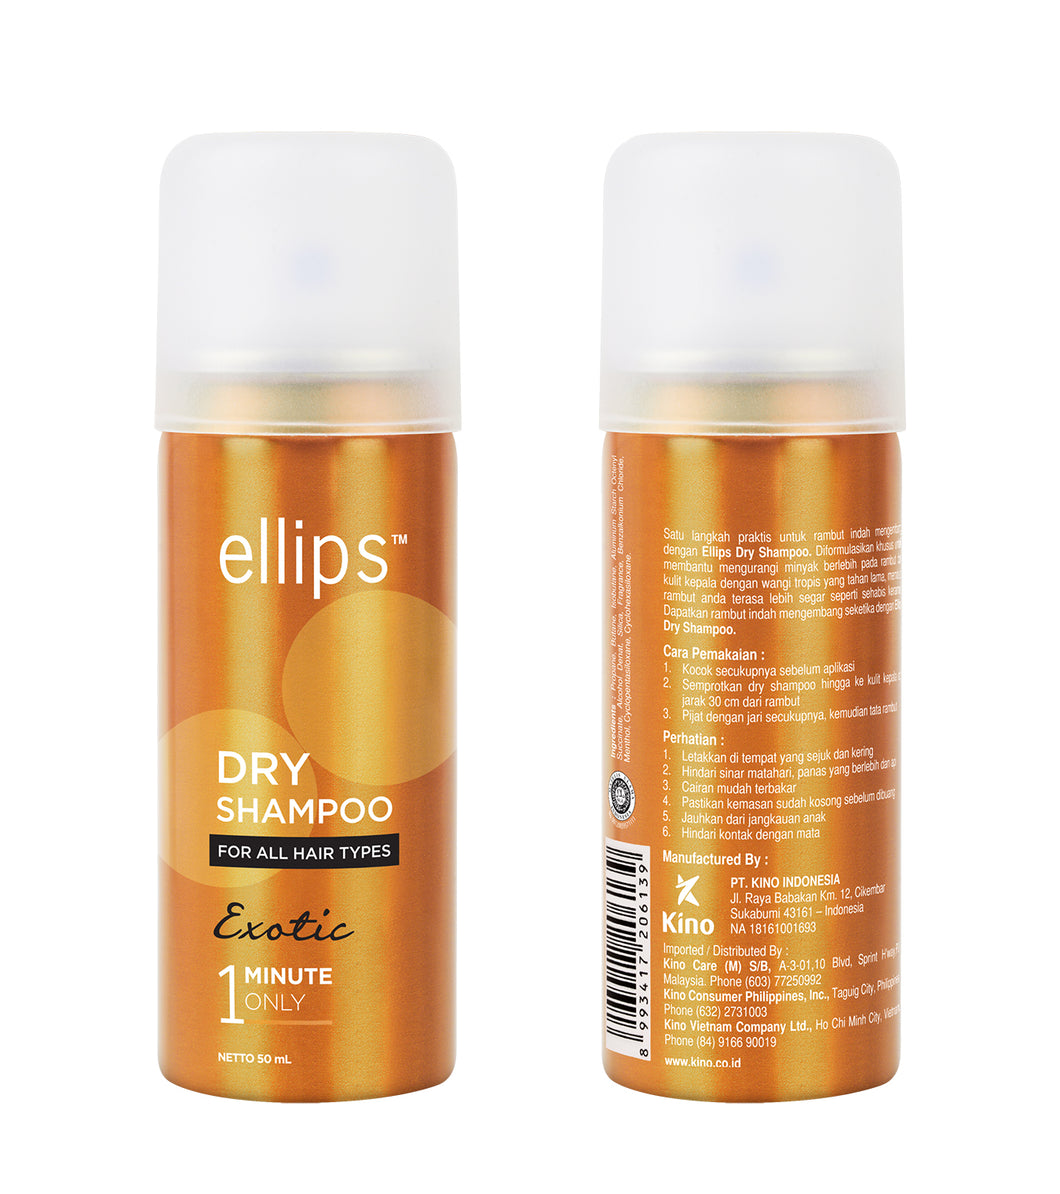 Ellips Dry Shampoo, Exotic